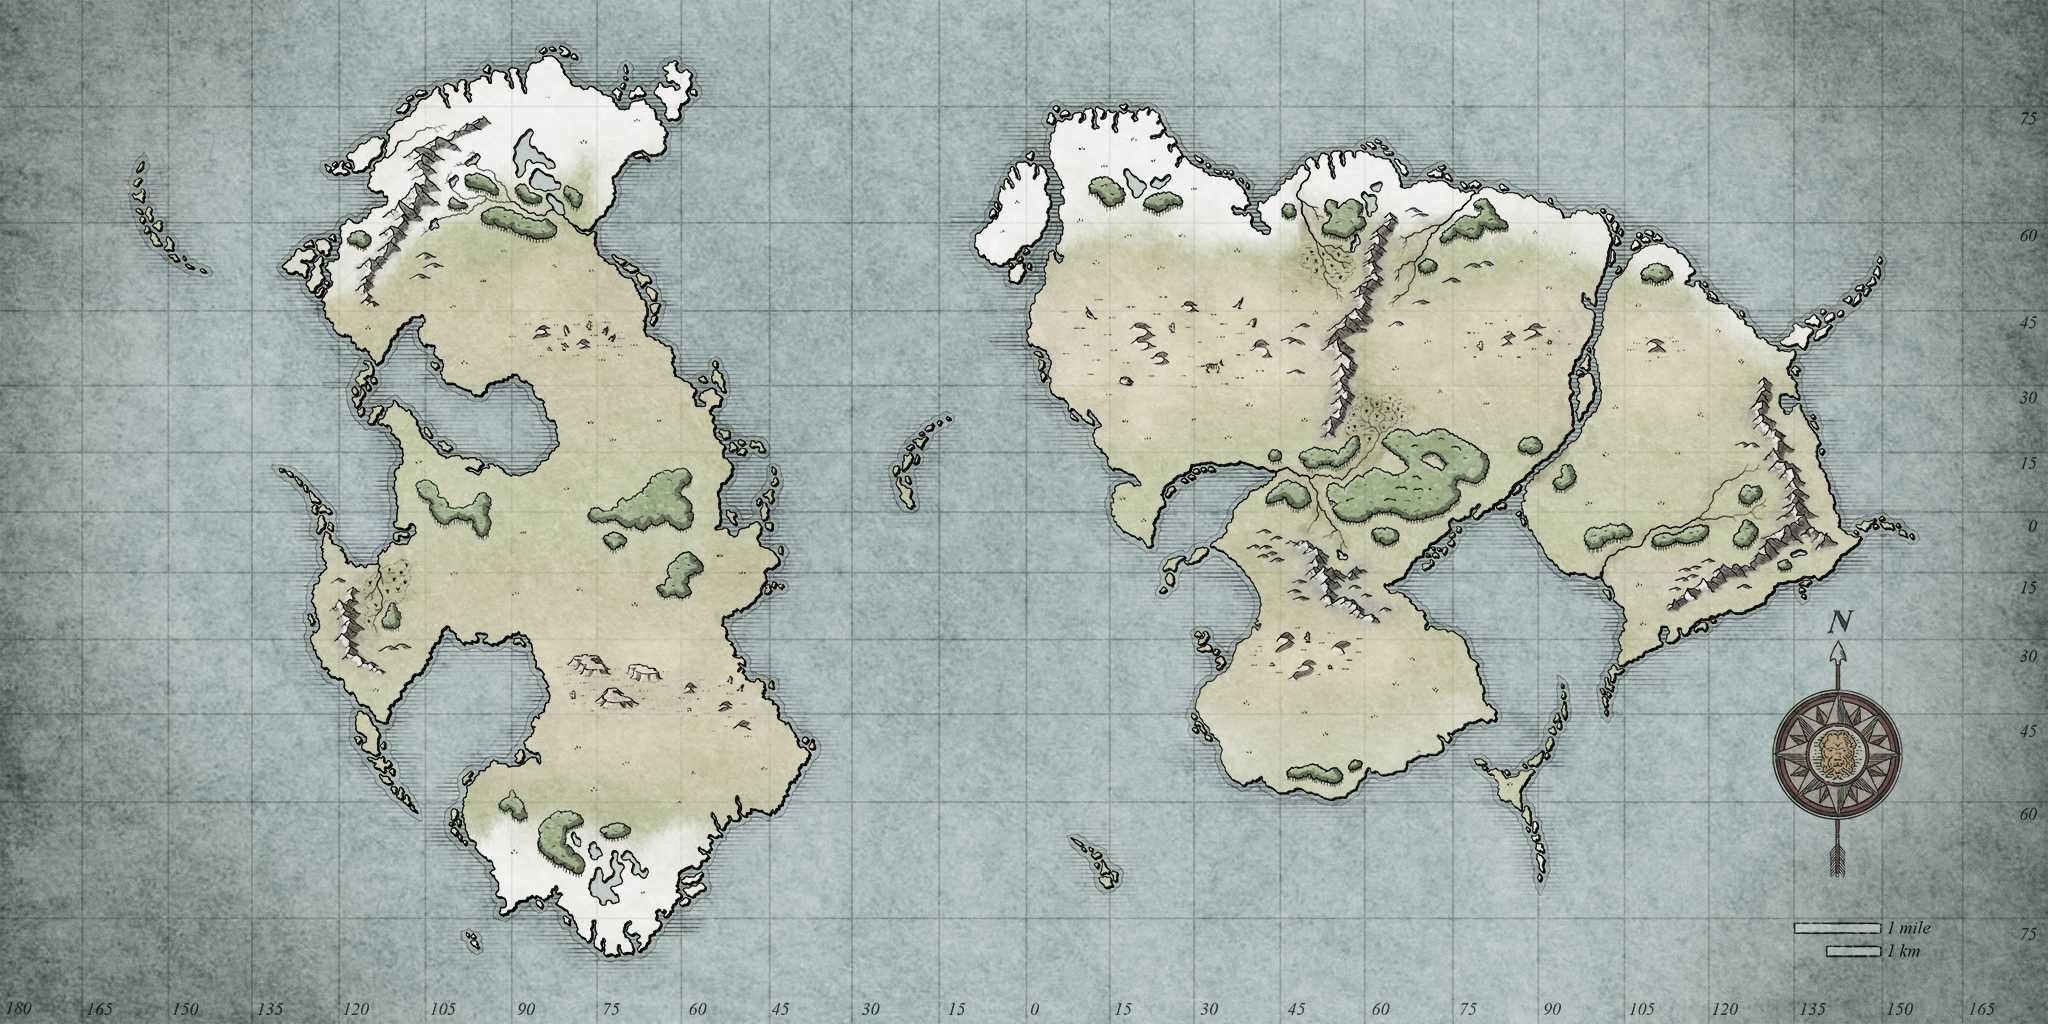 Step 11 - Adding colors to your fantasy map